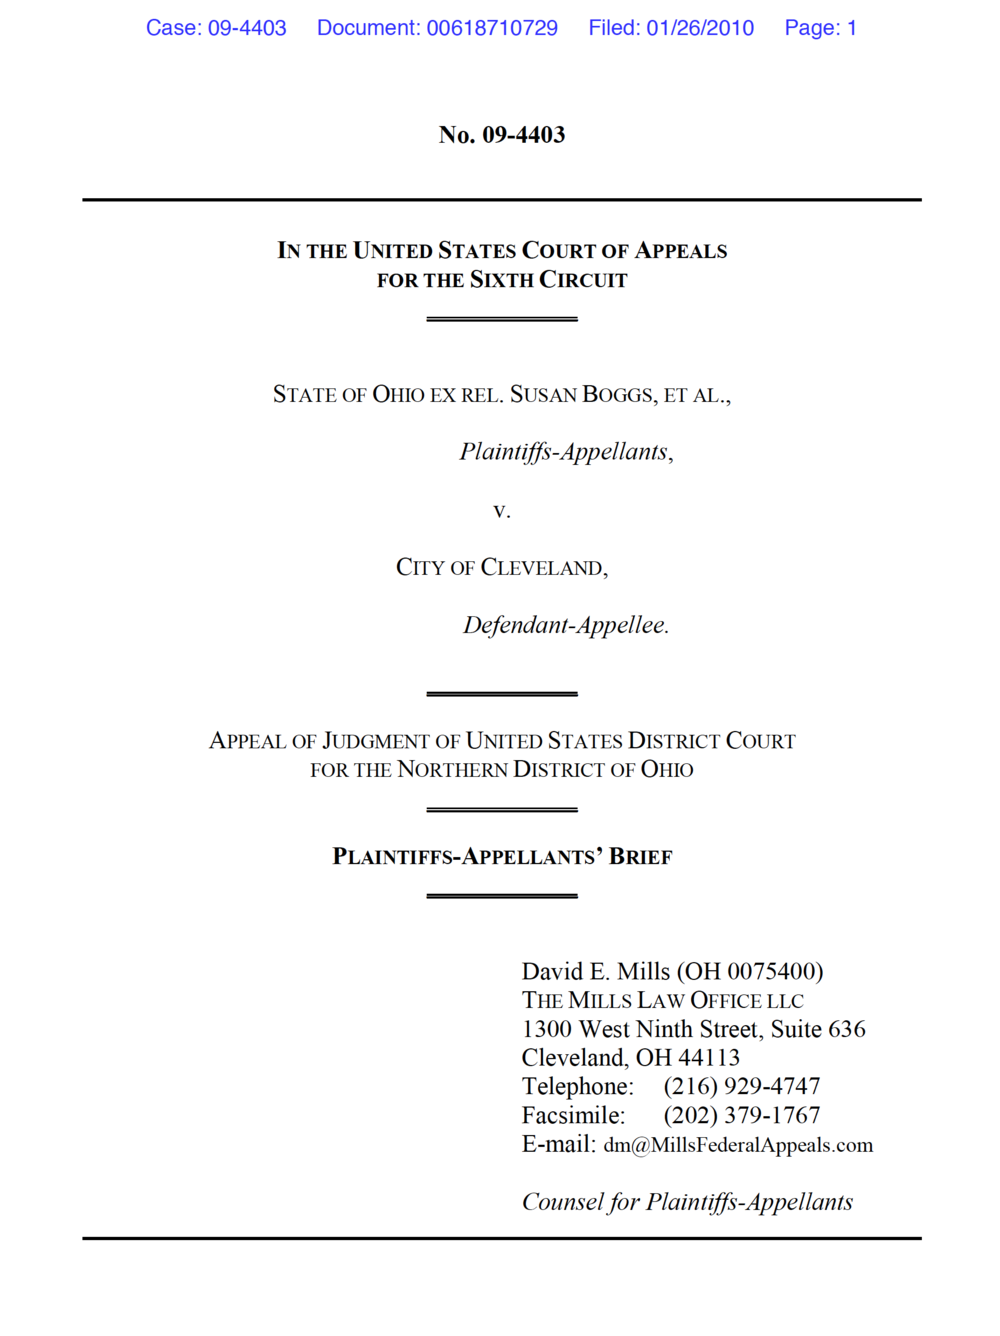 When New Facts In A Second Lawsuit Overcome The Defense Of Res My First Circuit Boards Theres Good News And Bad Scope State Ohio Ex Rel Susan Boggs Et Al V City Cleveland 655 F3d 516 6th Cir 2011 What Follows Are Excerpts Main Brief On This Point